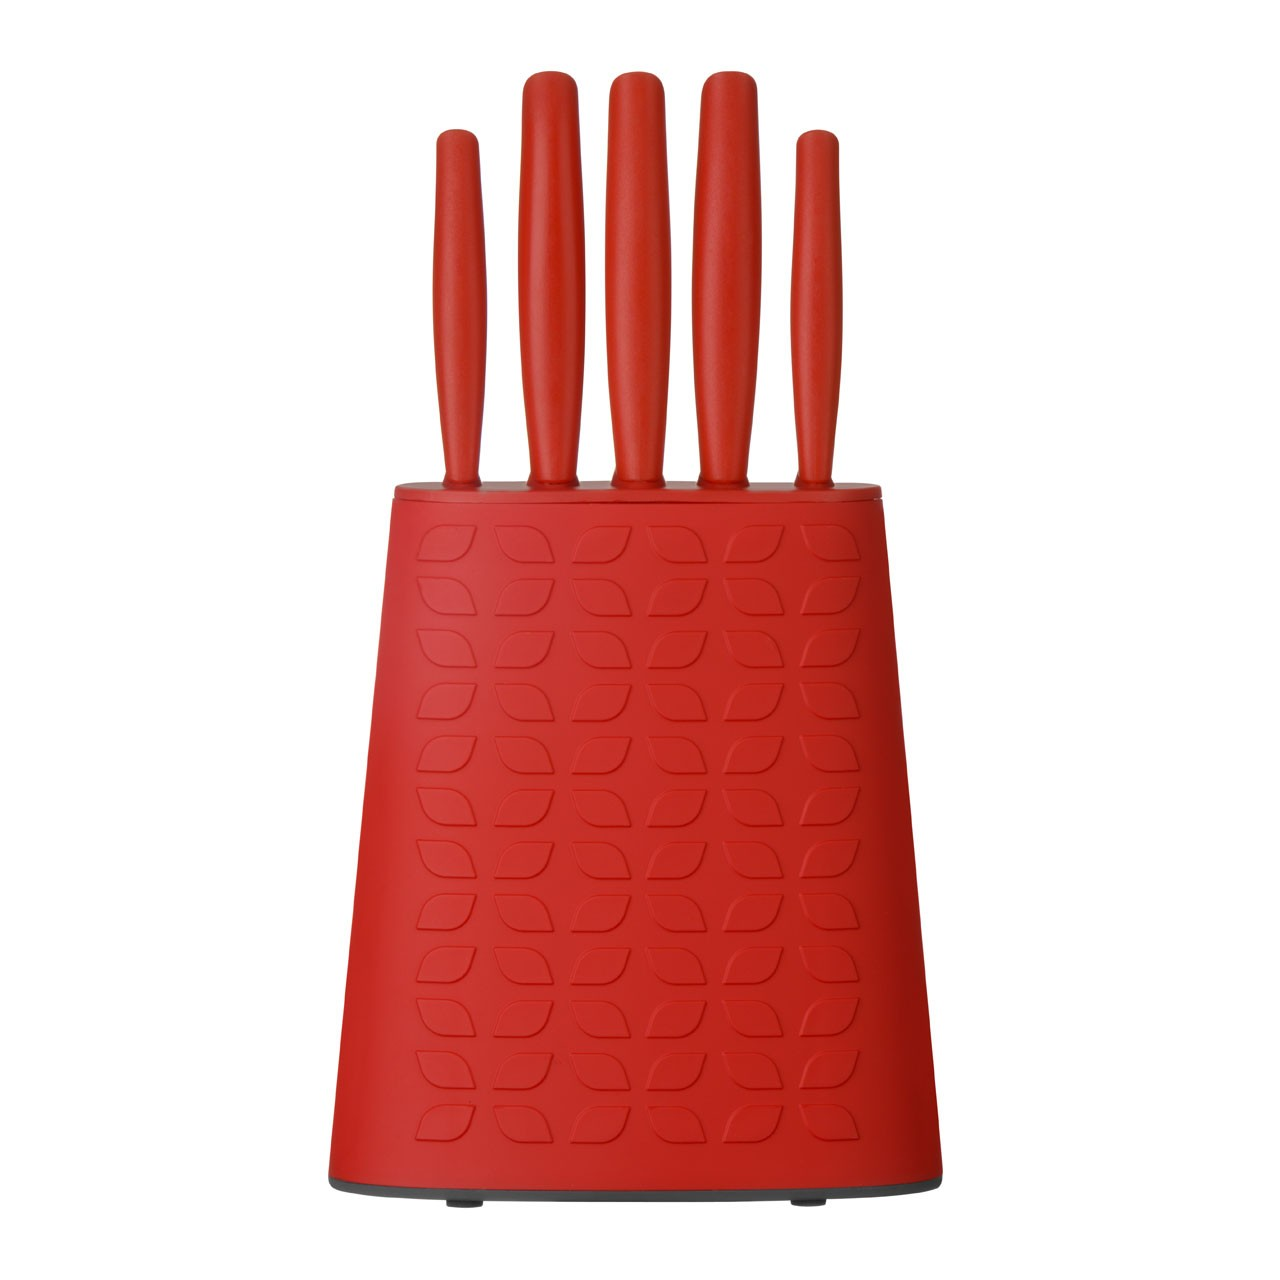 5pc Knife Block Set Red PP Handle/Block Stainless Steel Blades